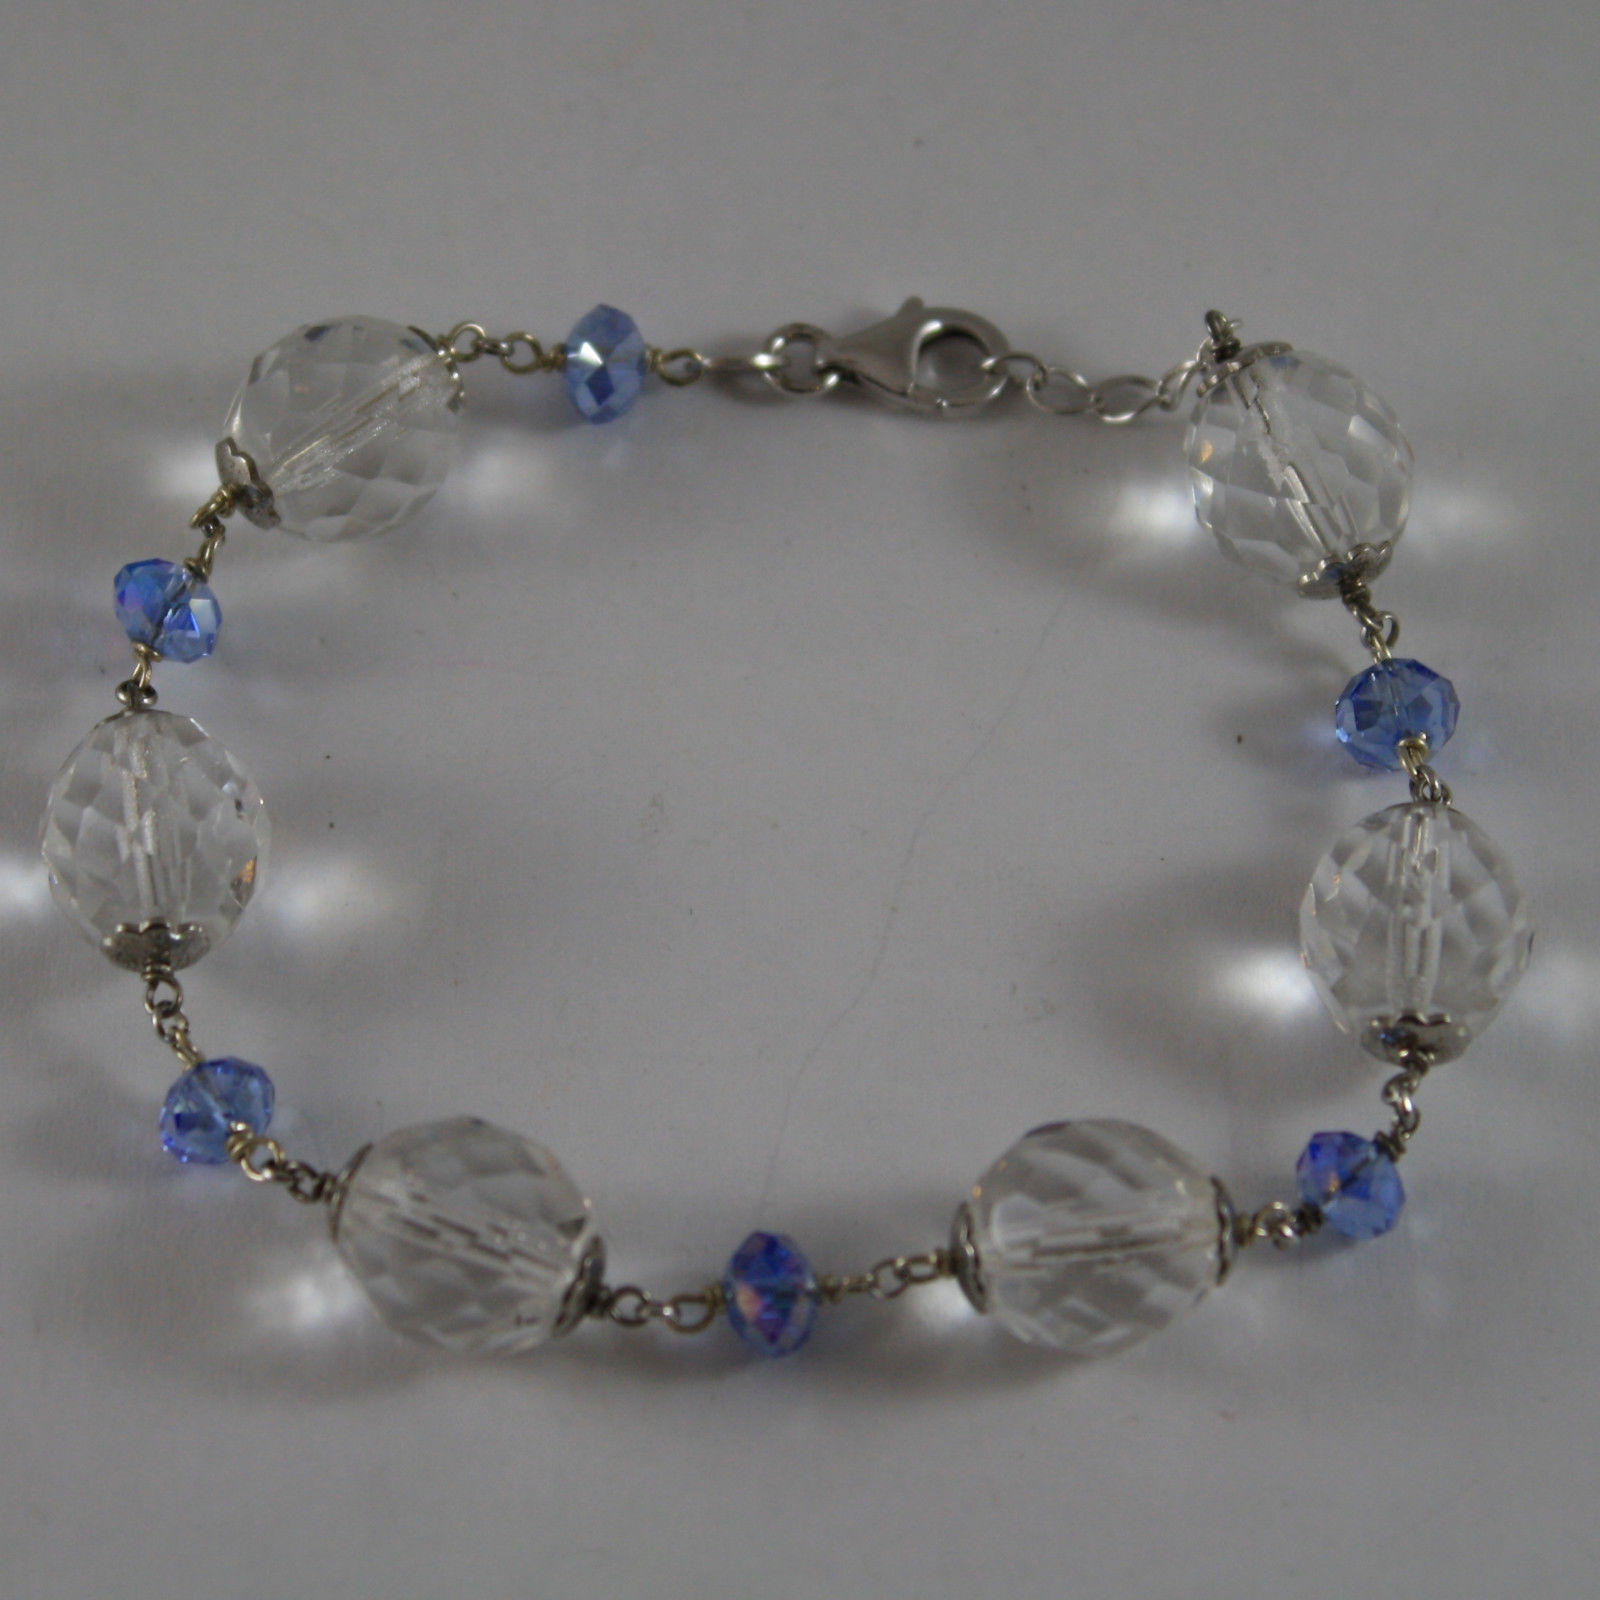 925. RHODIUM SILVER BRACELET WITH BLUE AND TRANSPARENT CRISTALS